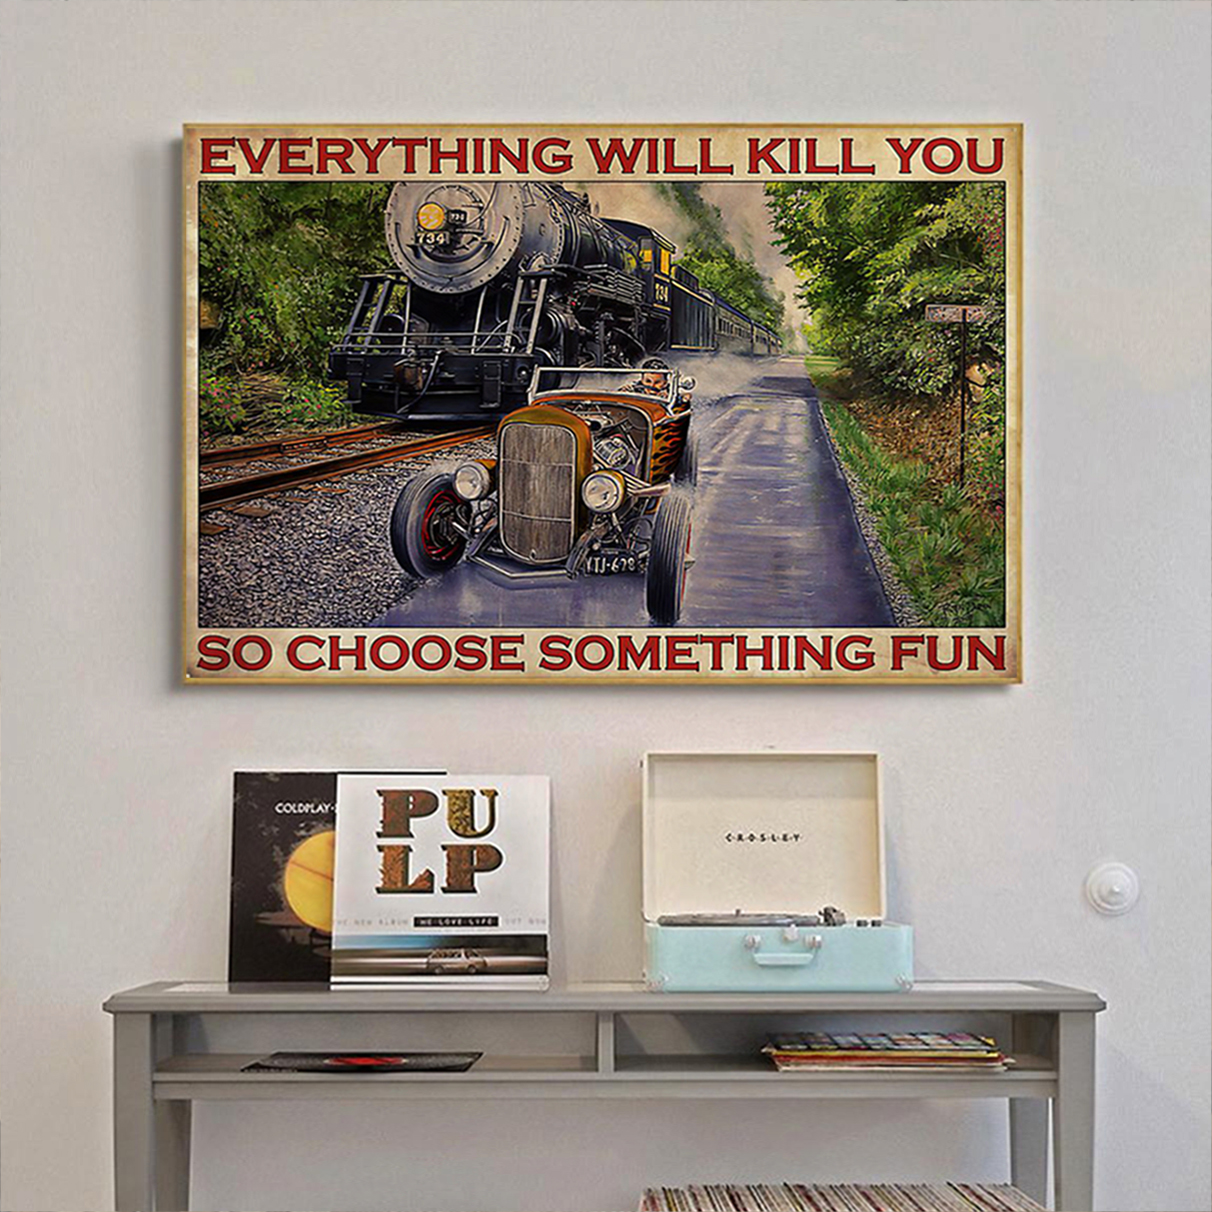 Hot rod car and train racing everything will kill you so choose something fun poster A1